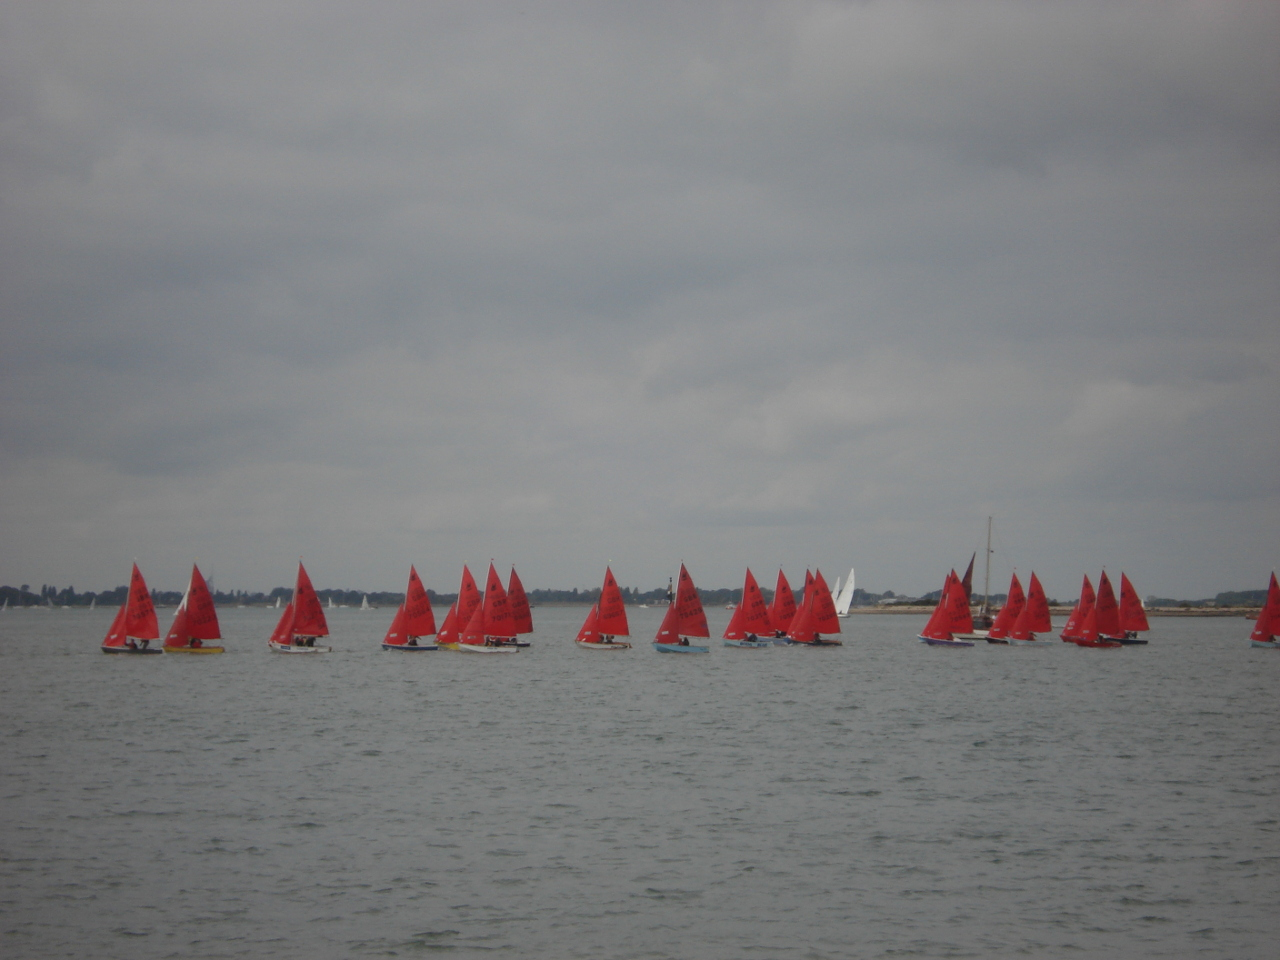 A fleet of Mirrors starting a race in the distance on a cloudy day